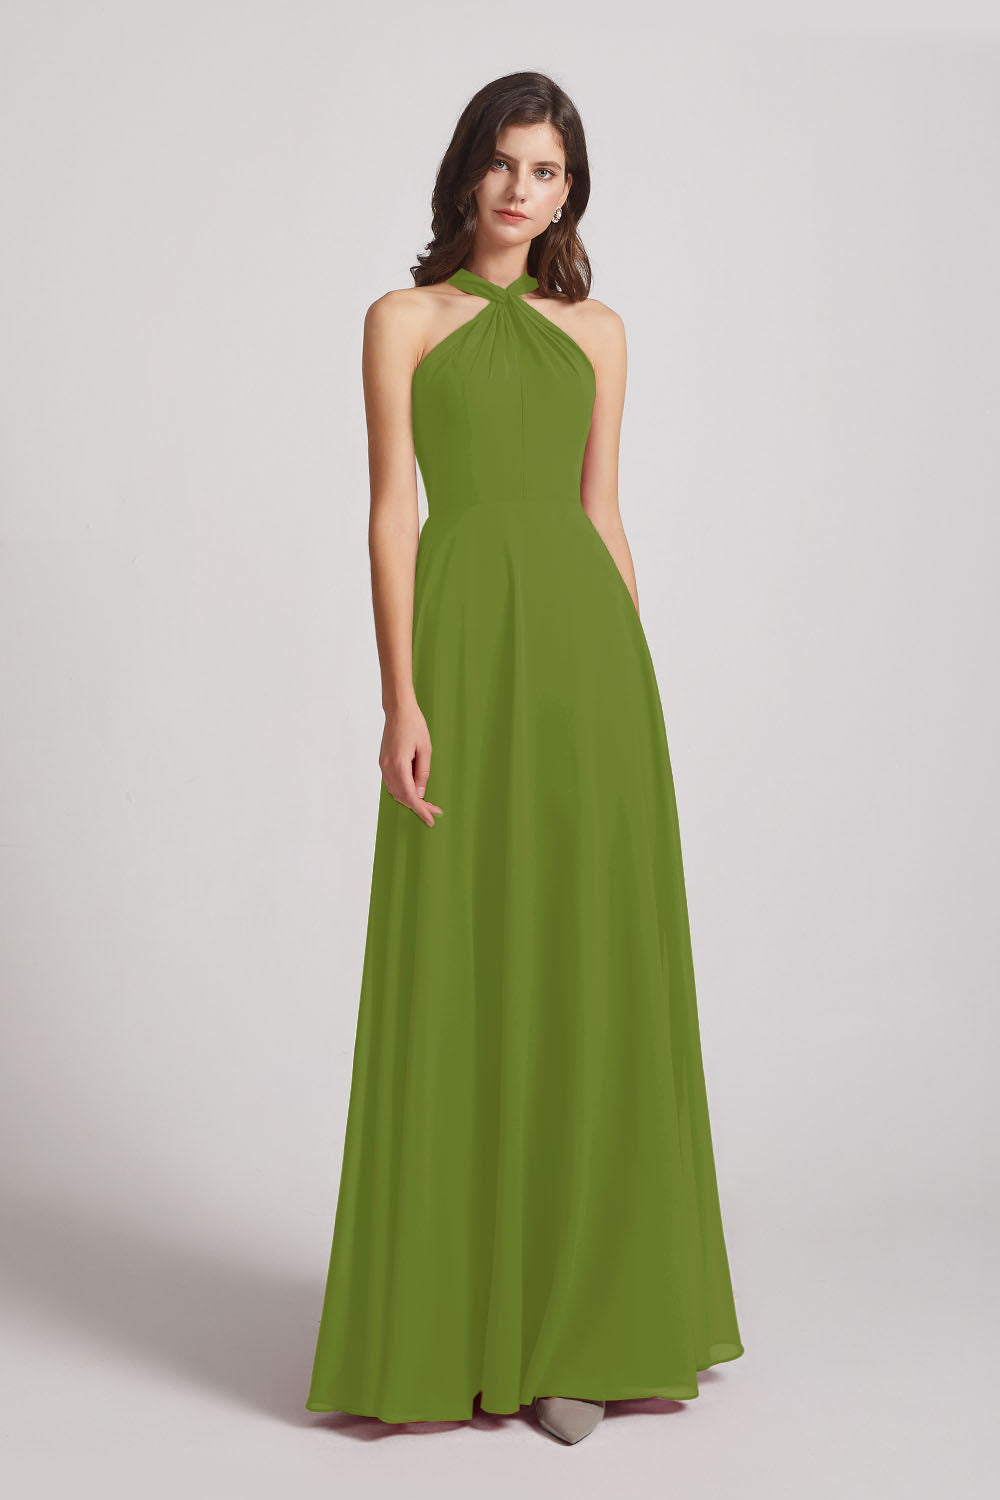 Alfa Bridal Olive Green Floor Length Chiffon Bridesmaid Dresses with Criss Cross Neckline (AF0113)